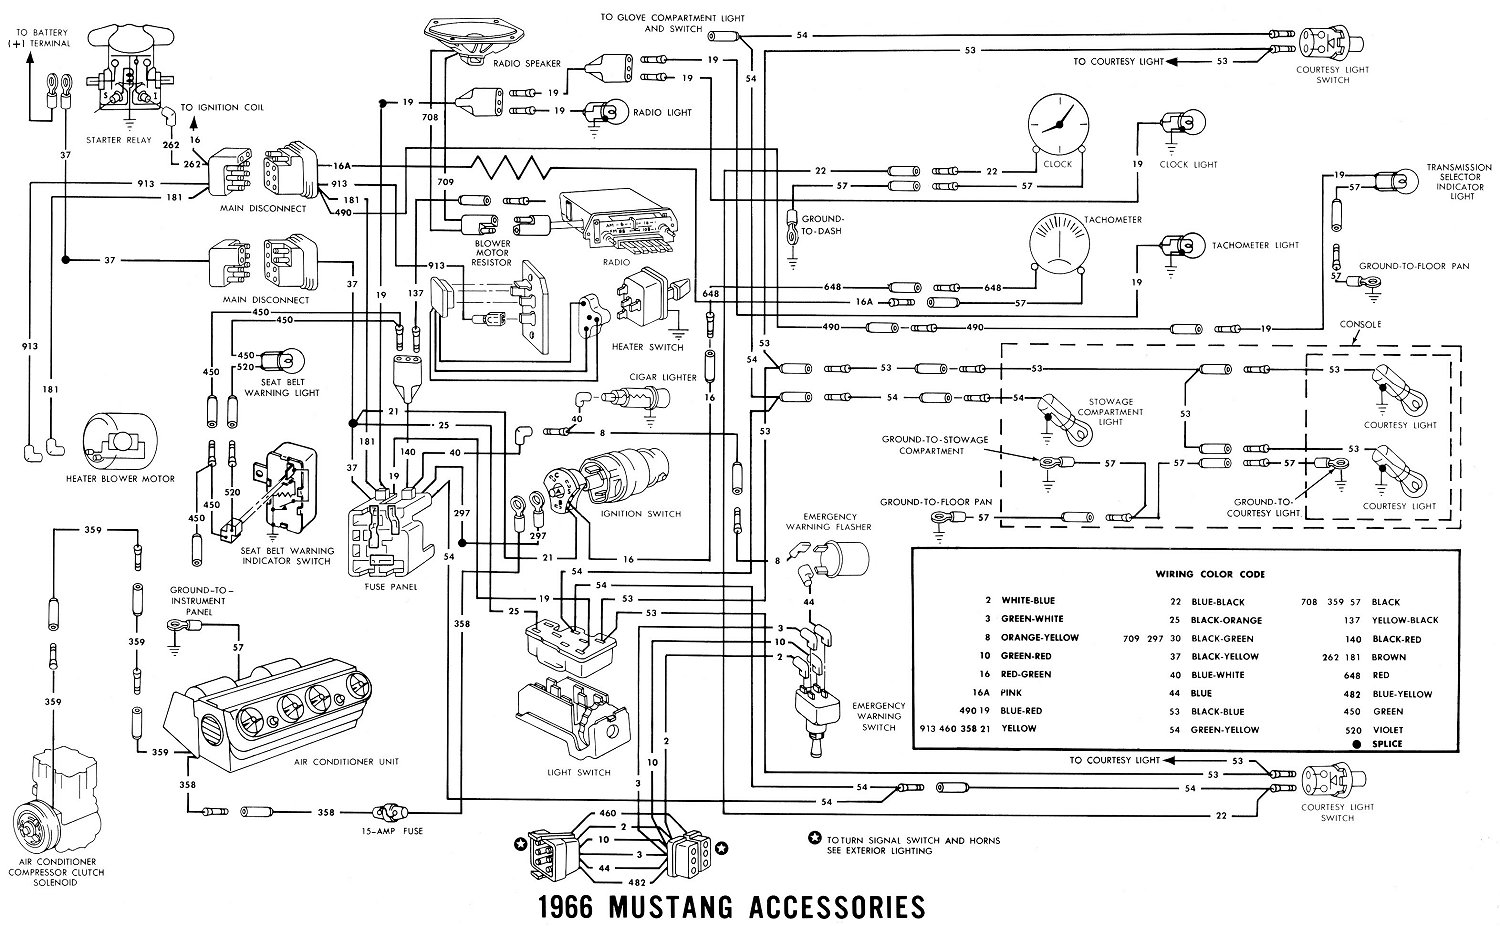 1966 Ford Mustang Accessories Wiring Diagram 2000 mustang gt wiring diagram 2000 mustang schematics \u2022 free wiring harness 1964 mustang at bayanpartner.co